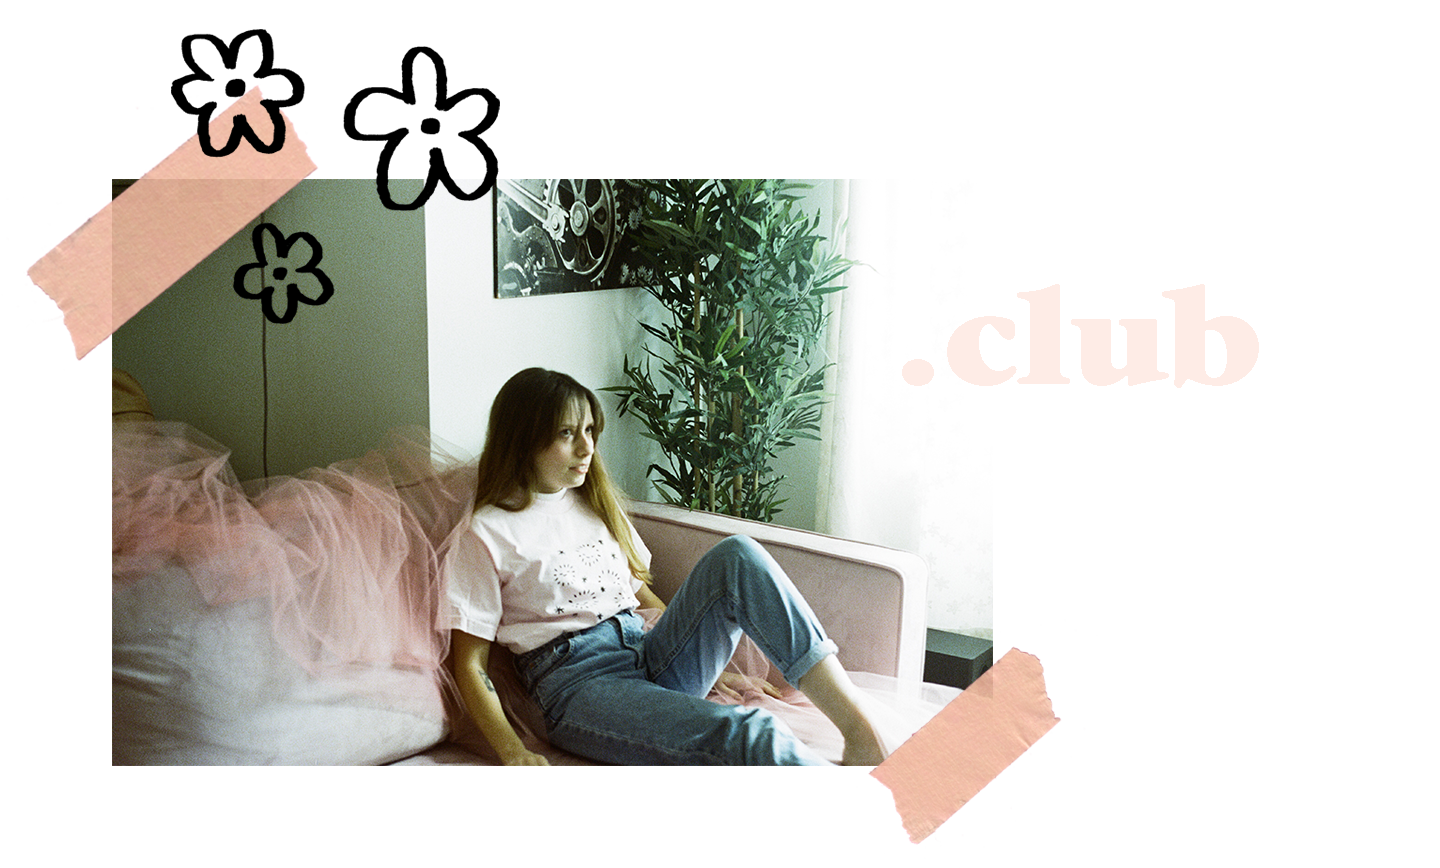 Girl model sitting on pink couch wearing pink pollen shirt.